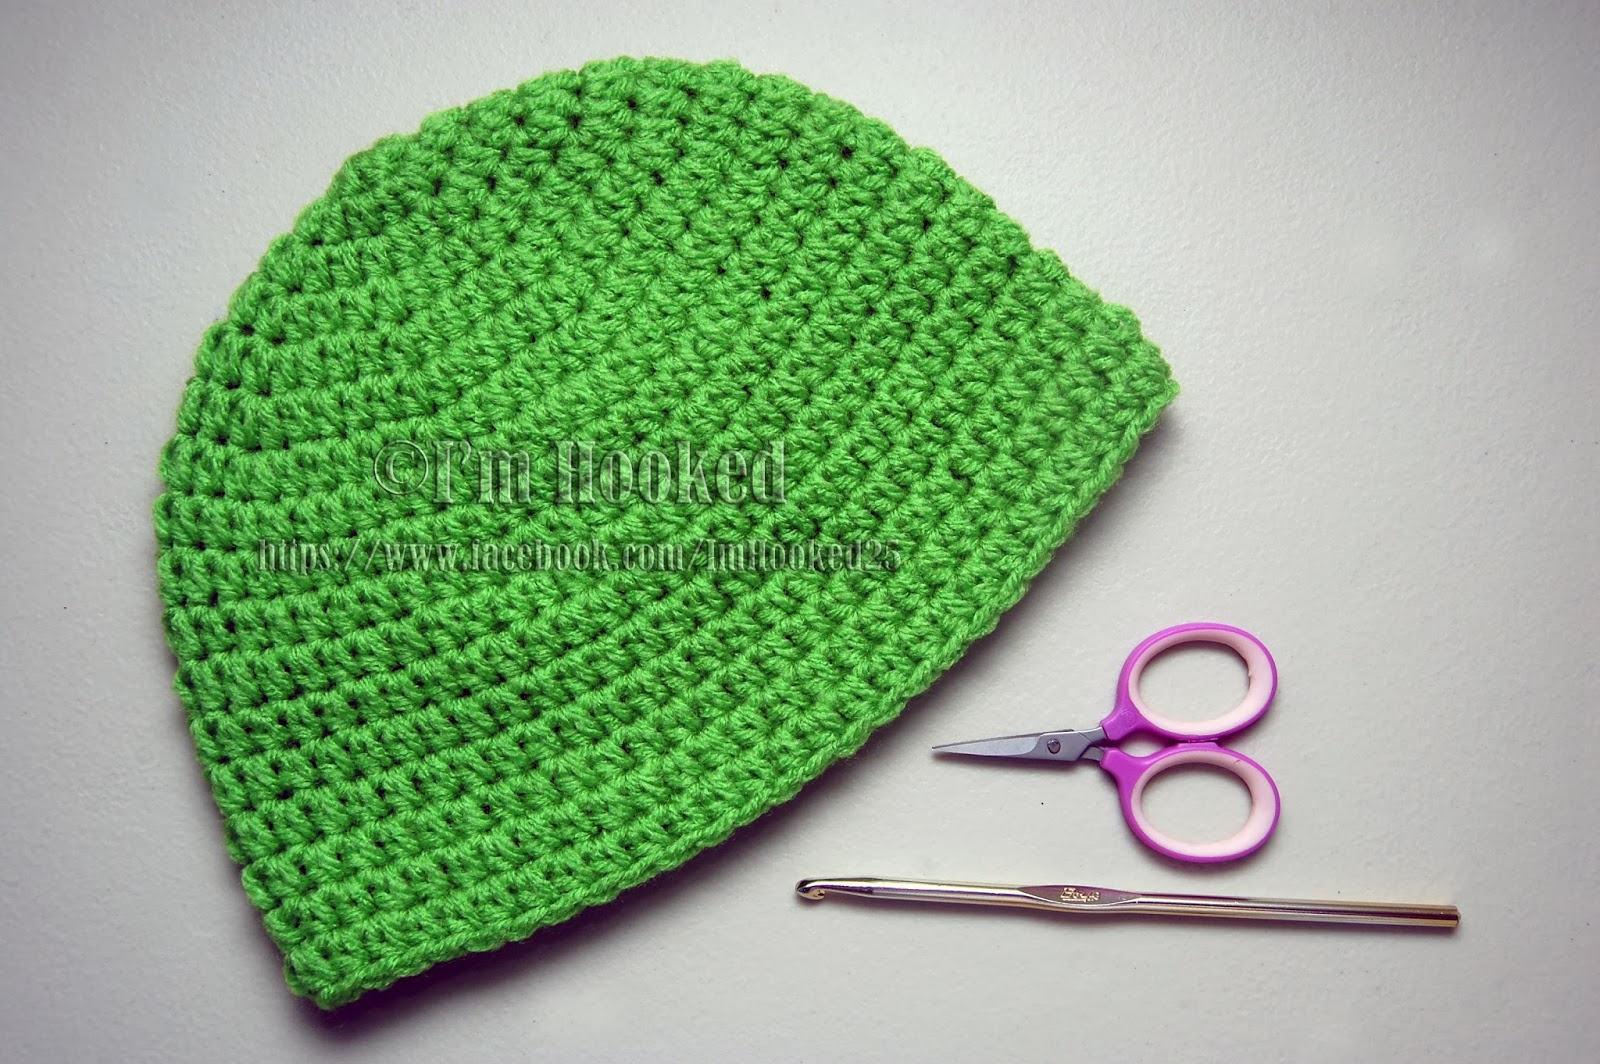 Basic Crochet Patterns : Free Crochet Pattern: Basic Beanie (Half Double Crochet)